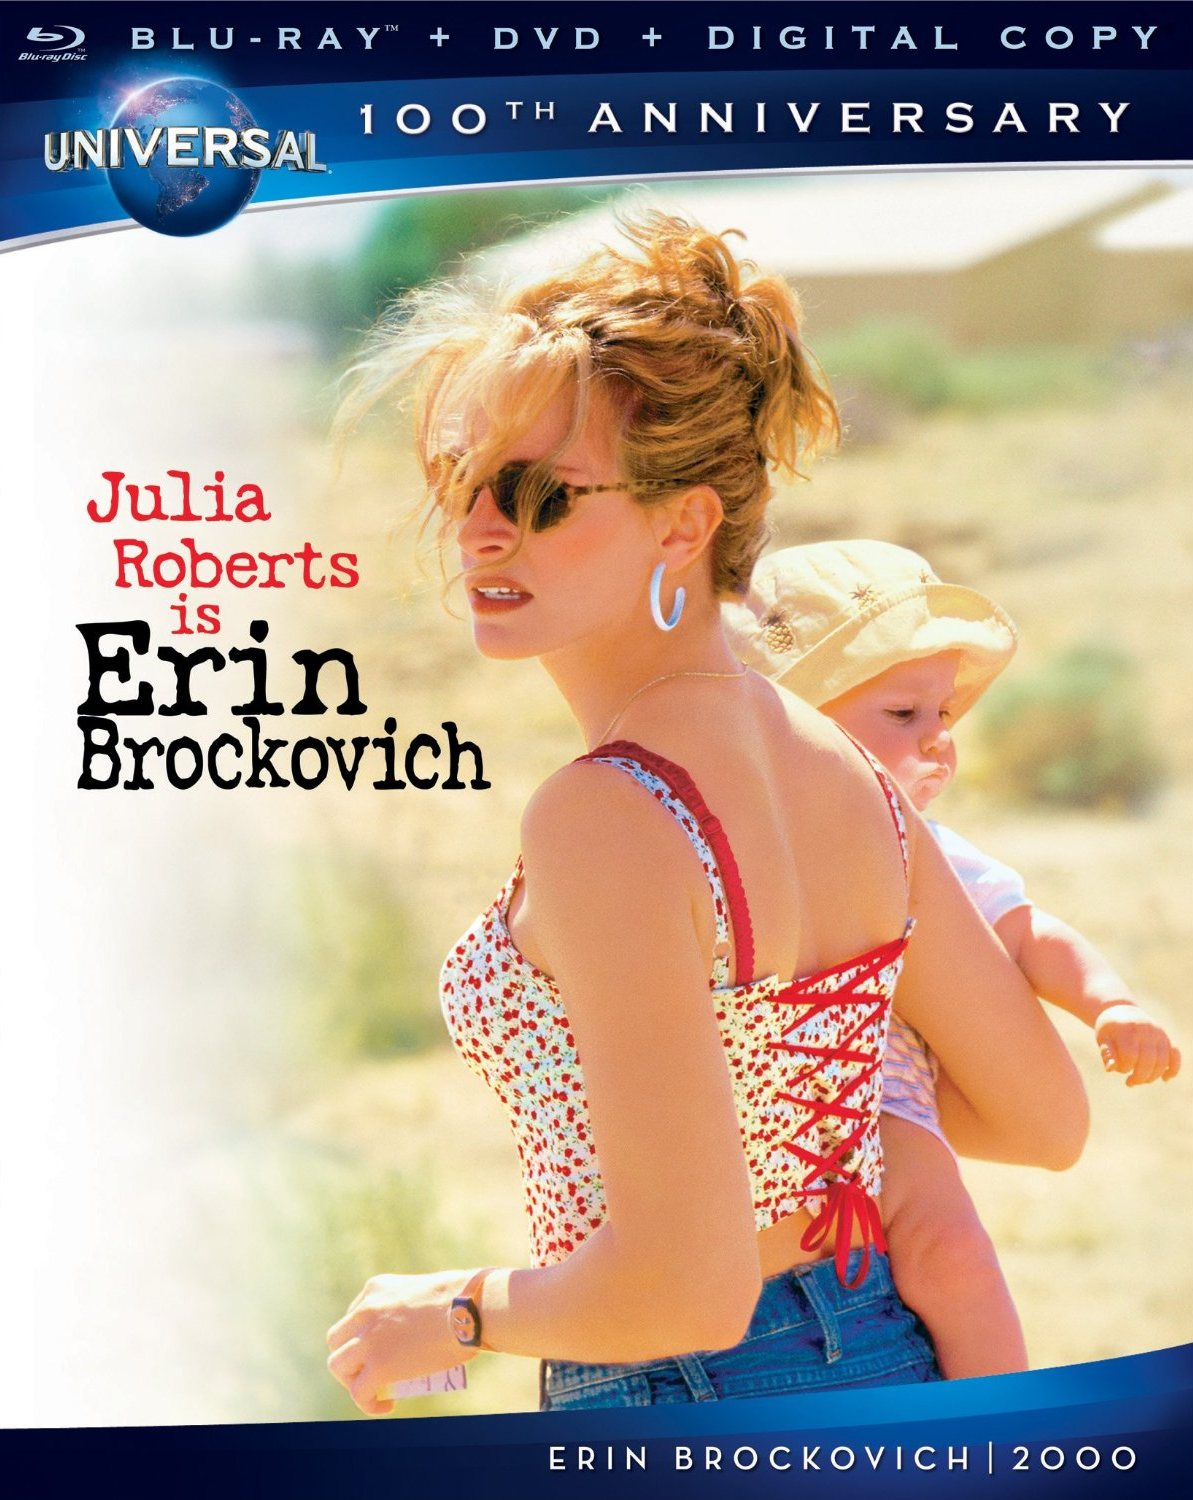 movie review erin brockovich Ask question about erin brockovich movie get answers also read and write reviews of erin brockovich movie on mouthshutcom.